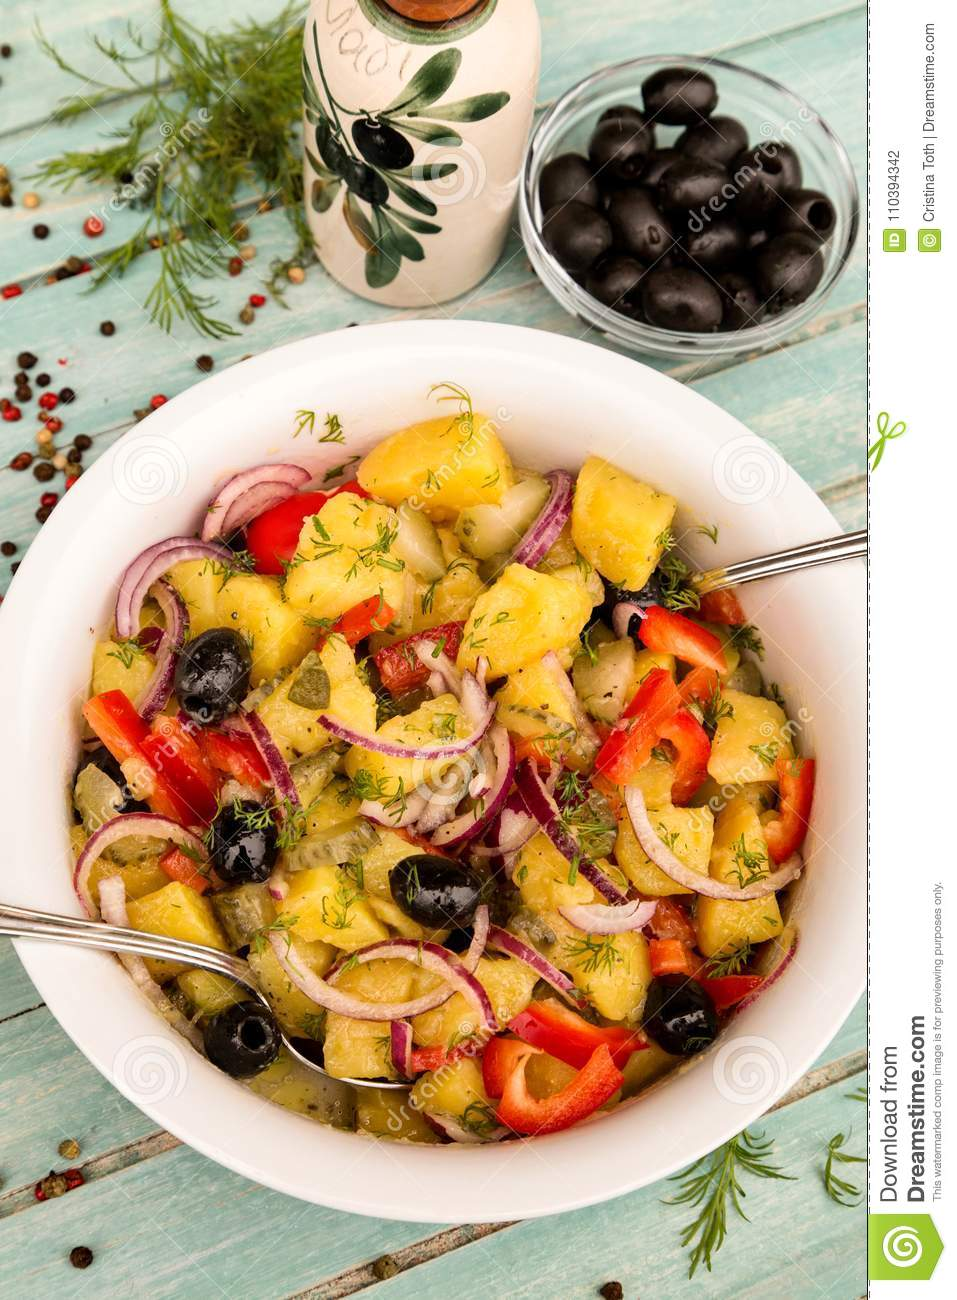 Potato Salad With Dill Pickles And Olives